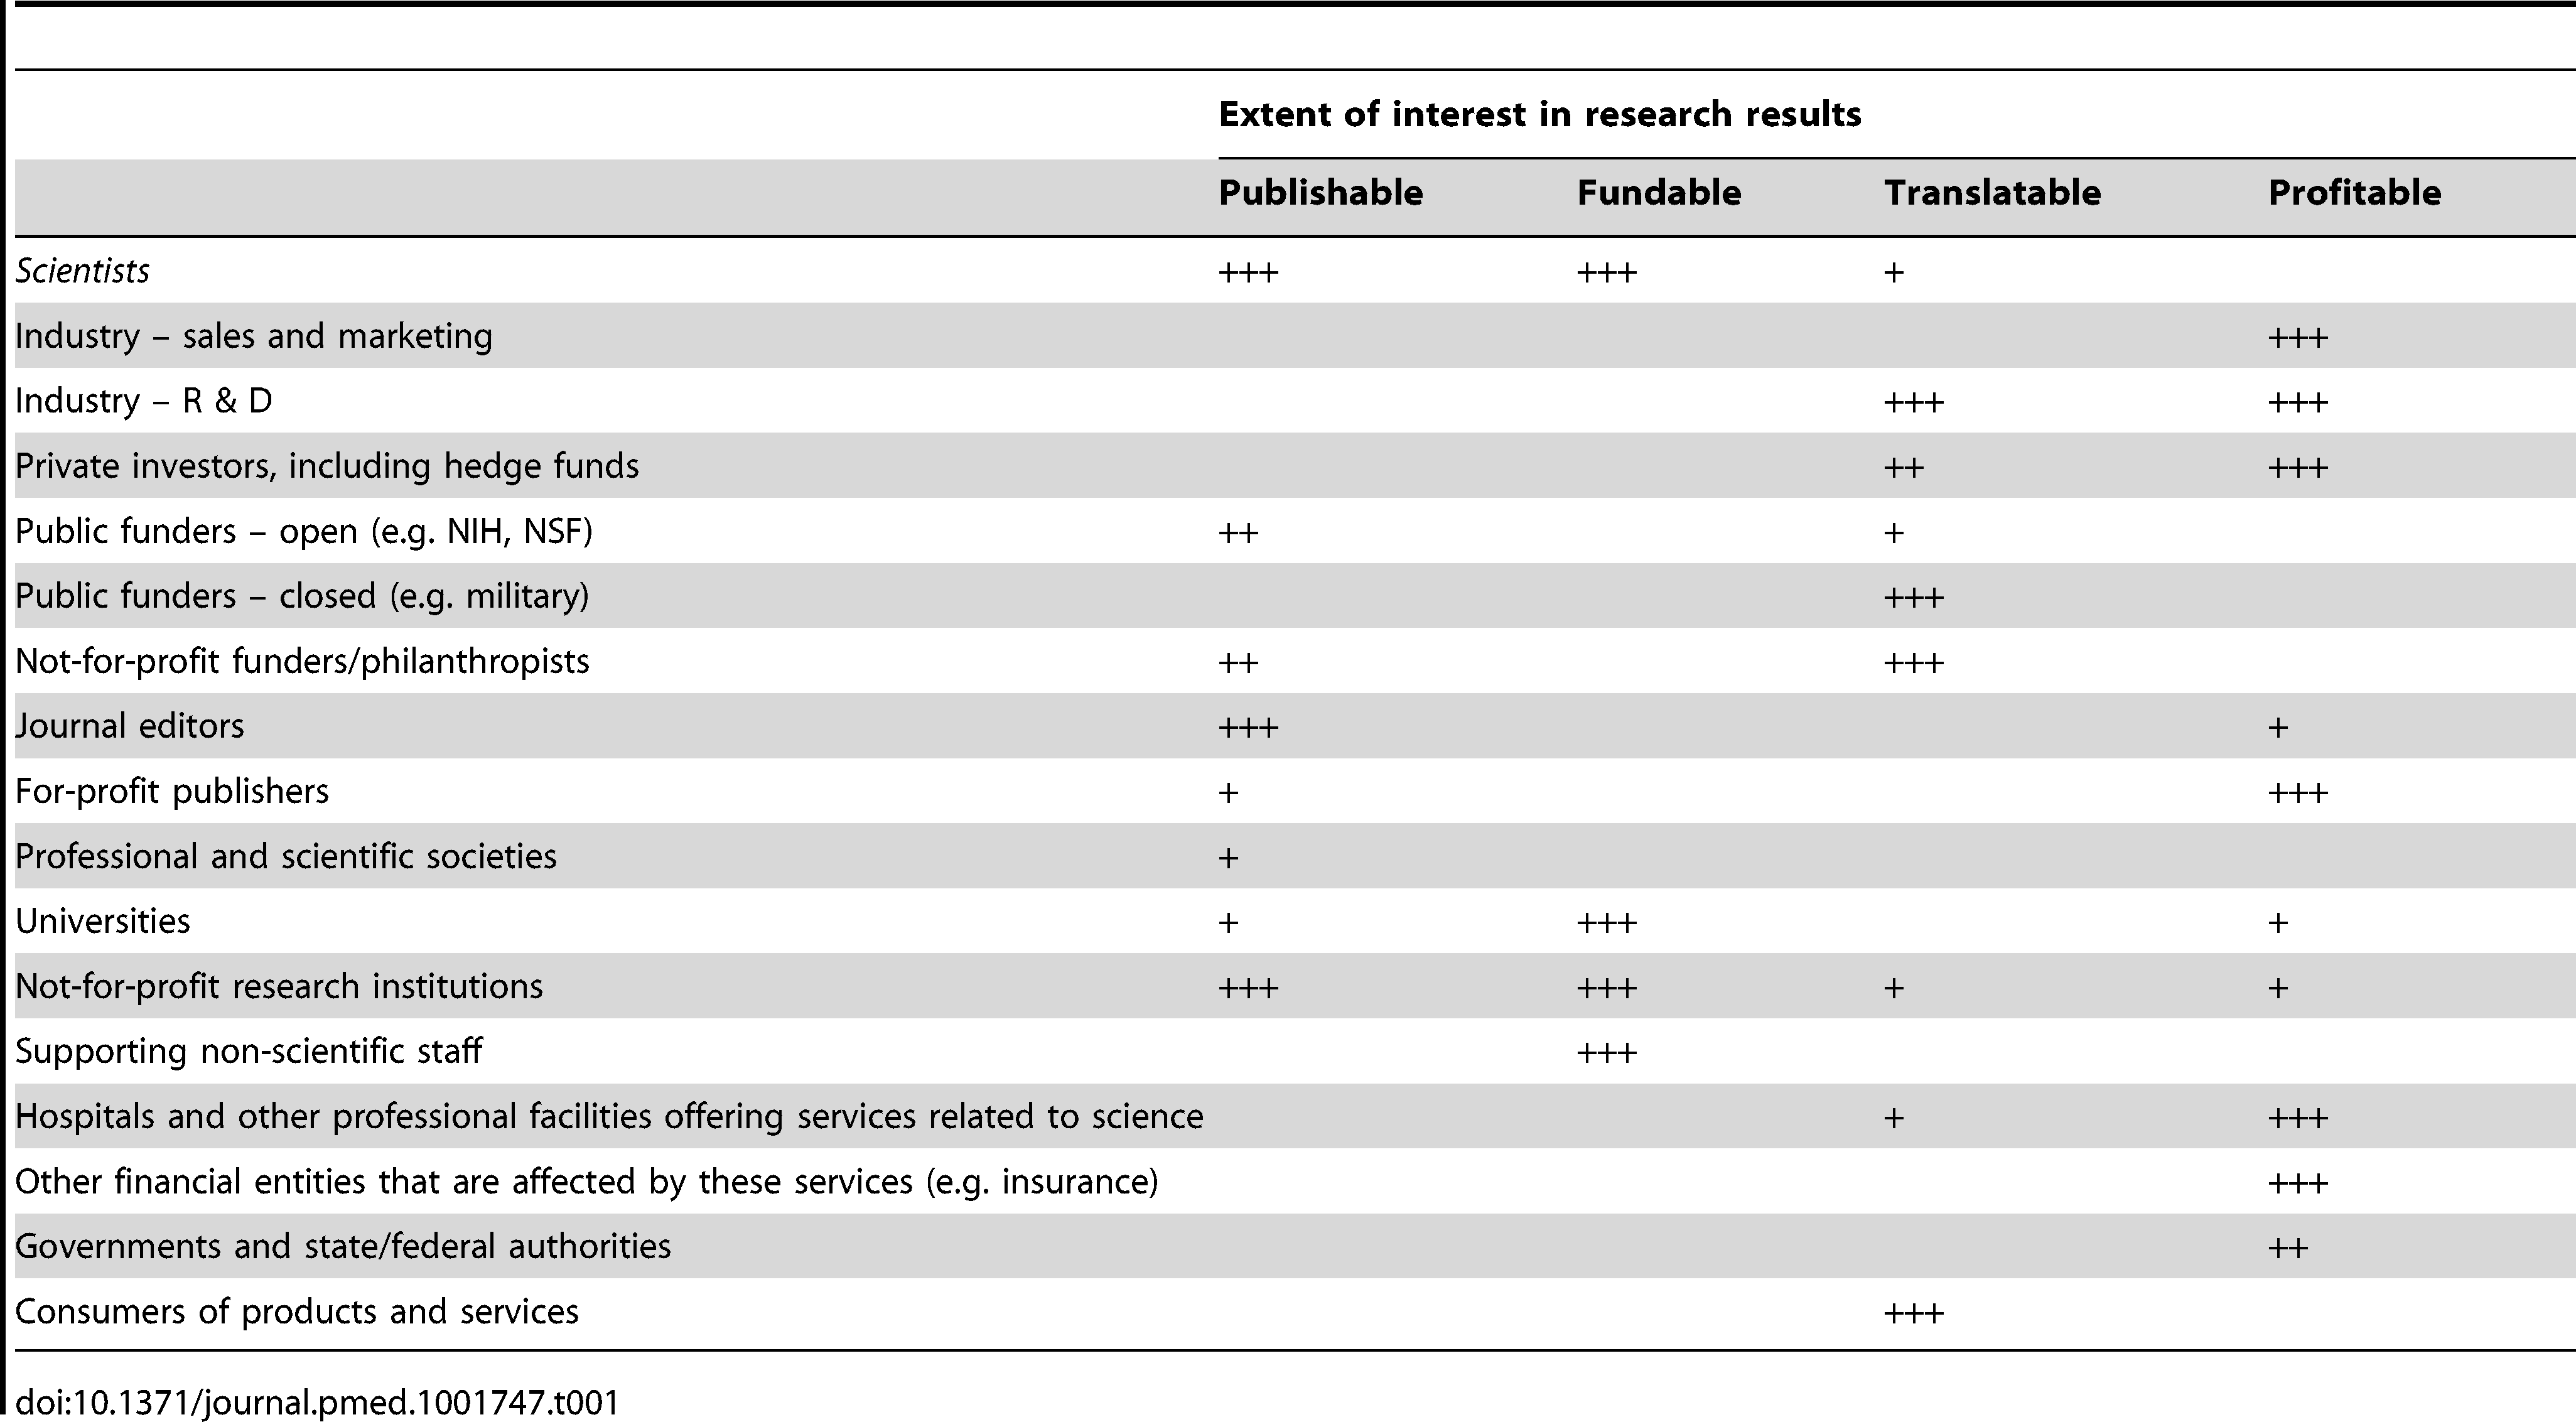 Some major stakeholders in science and their extent of interest in research and its results from various perspectives; typical patterns are presented (exceptions do occur).